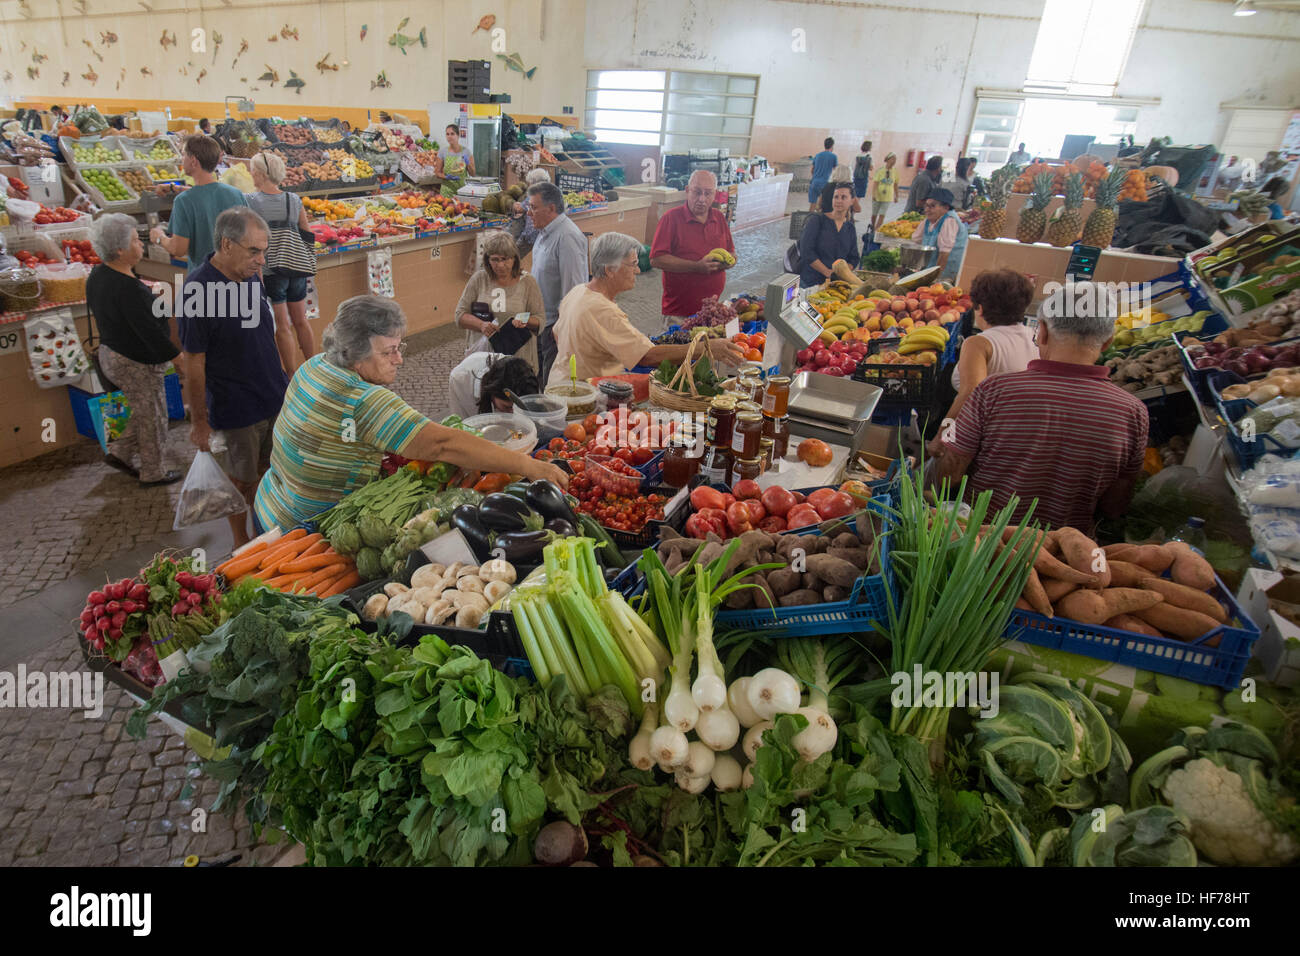 lidl fishing chair bunjo target algarve food stock photos and images alamy